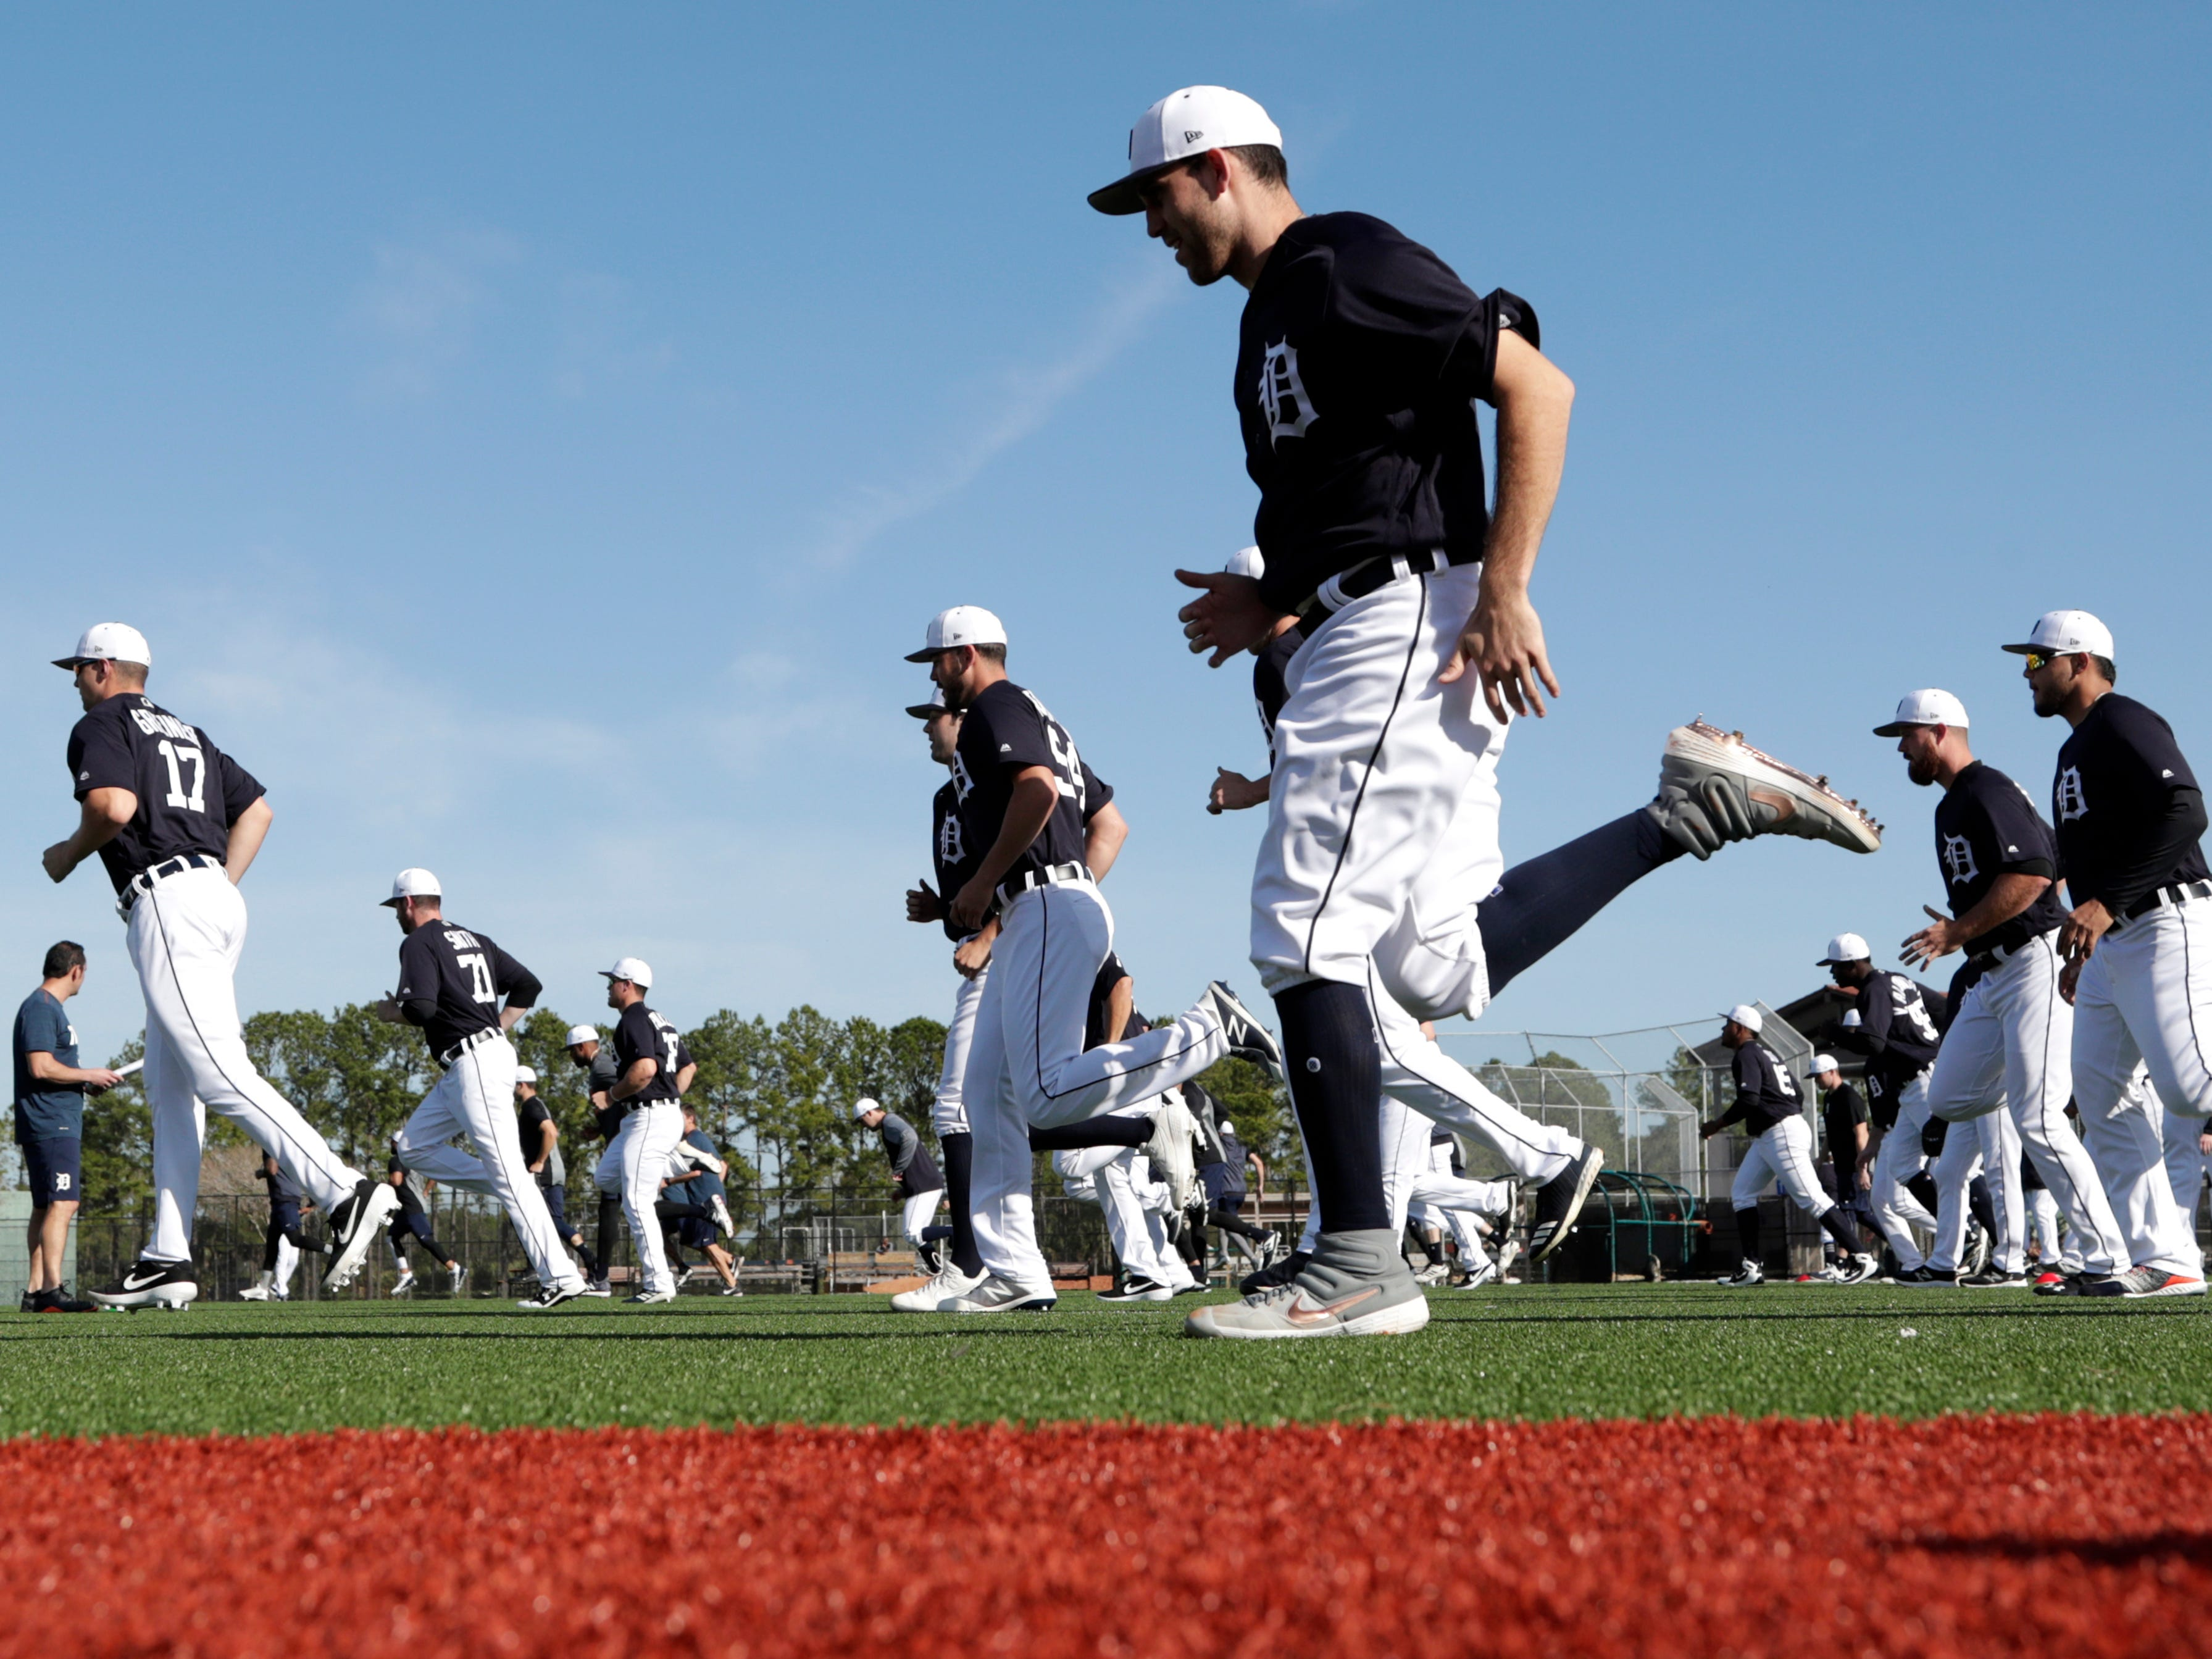 Detroit Tigers starting pitcher Matthew Boyd, center, loosens up at the Detroit Tigers spring training baseball facility.